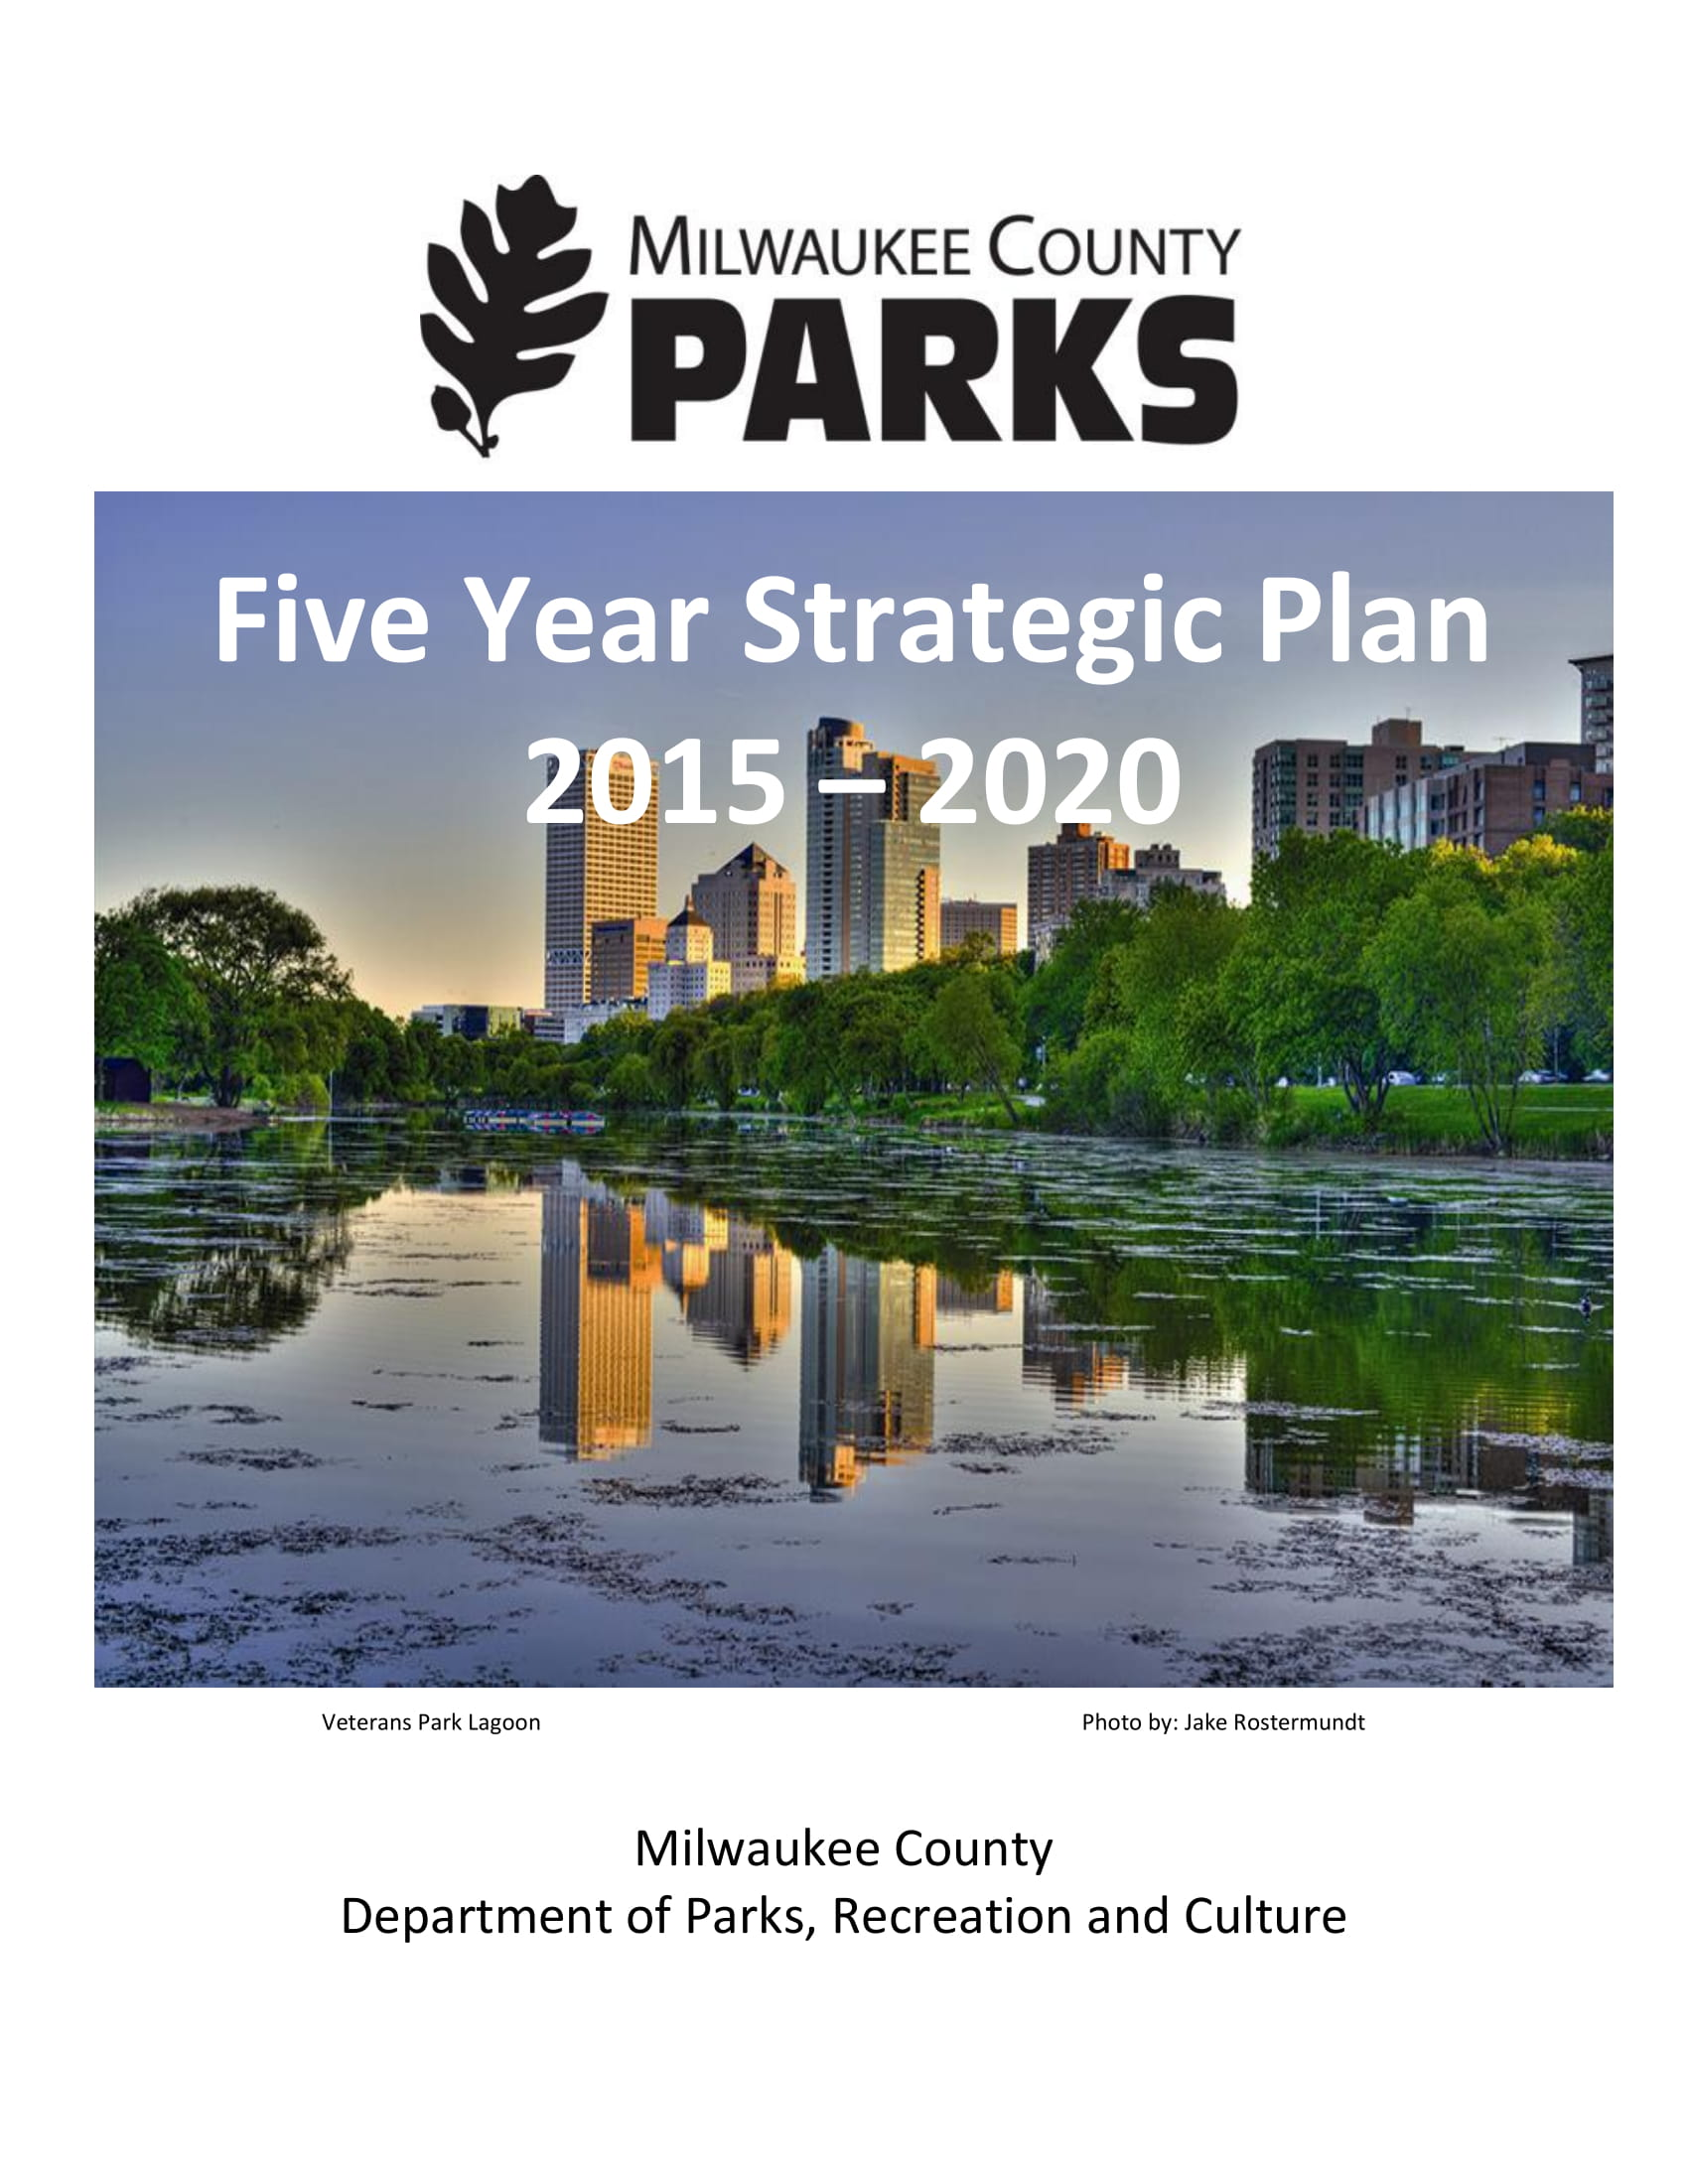 parks 5 year strategic plan example 01